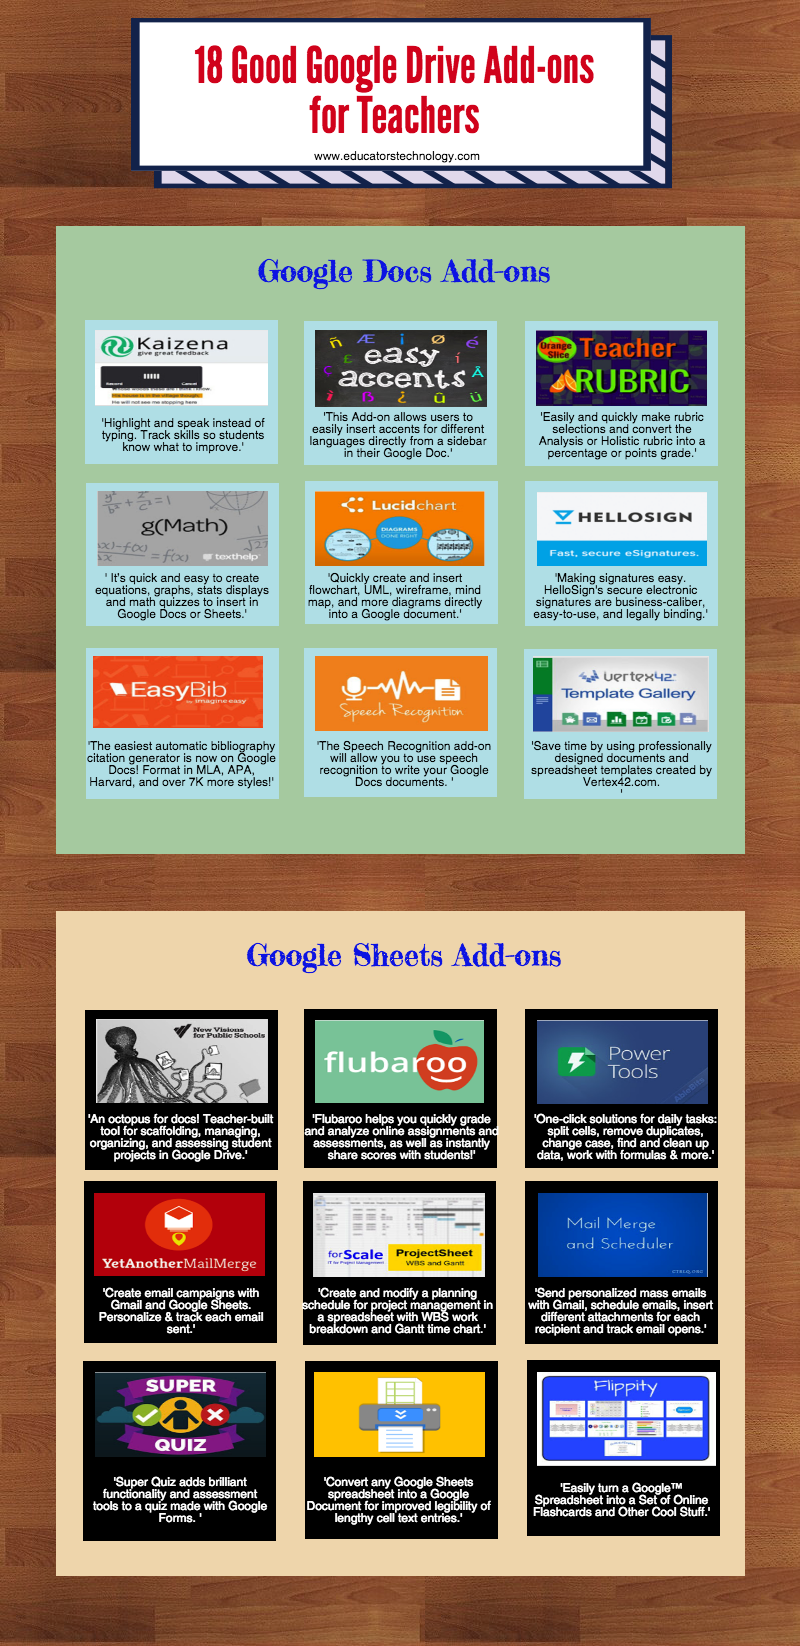 18 Good Google Drive Add-ons for Teachers